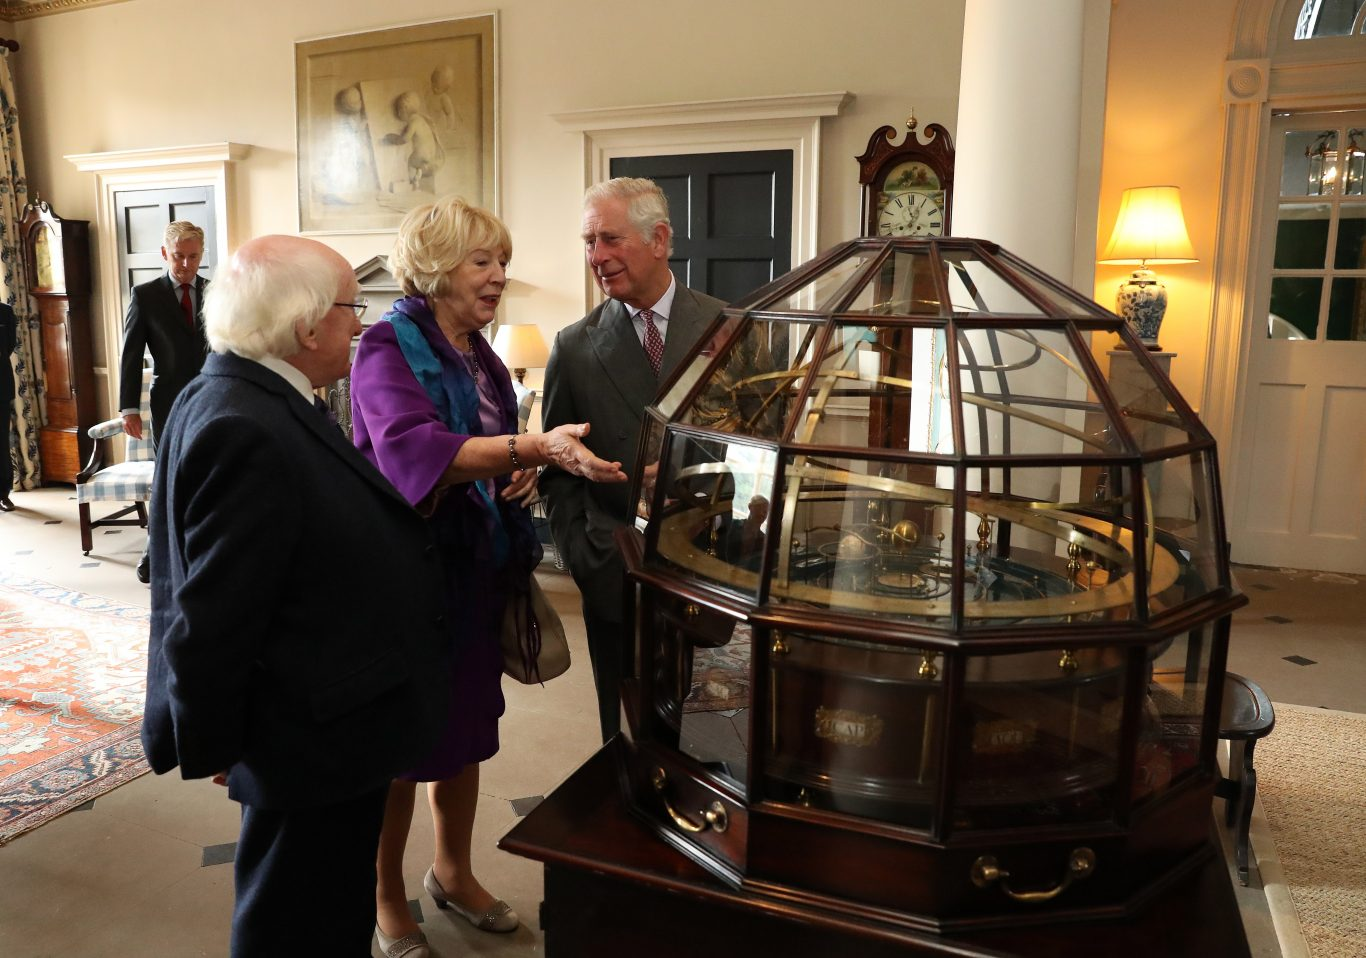 The Prince of Wales,  President of Ireland and his wife Sabina view the Grand Orrery, an 18th century mechanical model of the solar system (Andrew Milligan/PA)